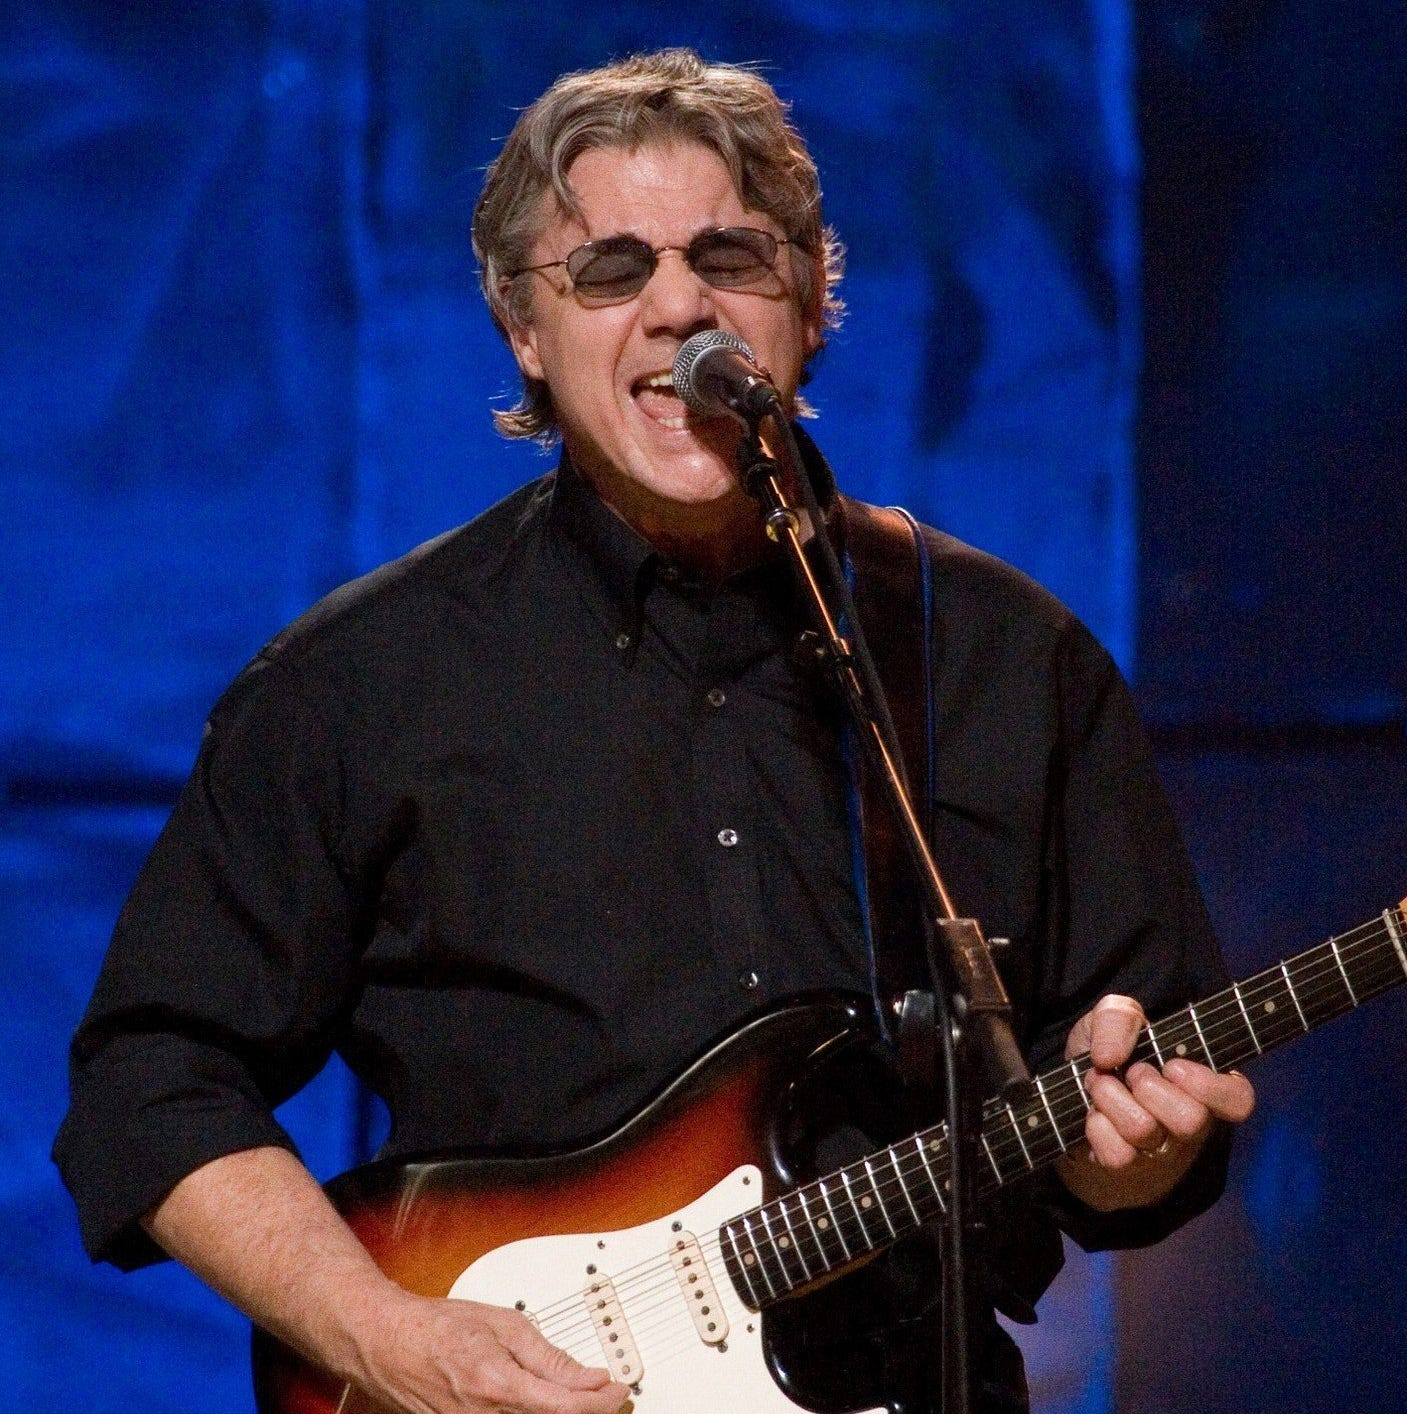 Steve Miller Band to play Hutton Brickyards in Kingston